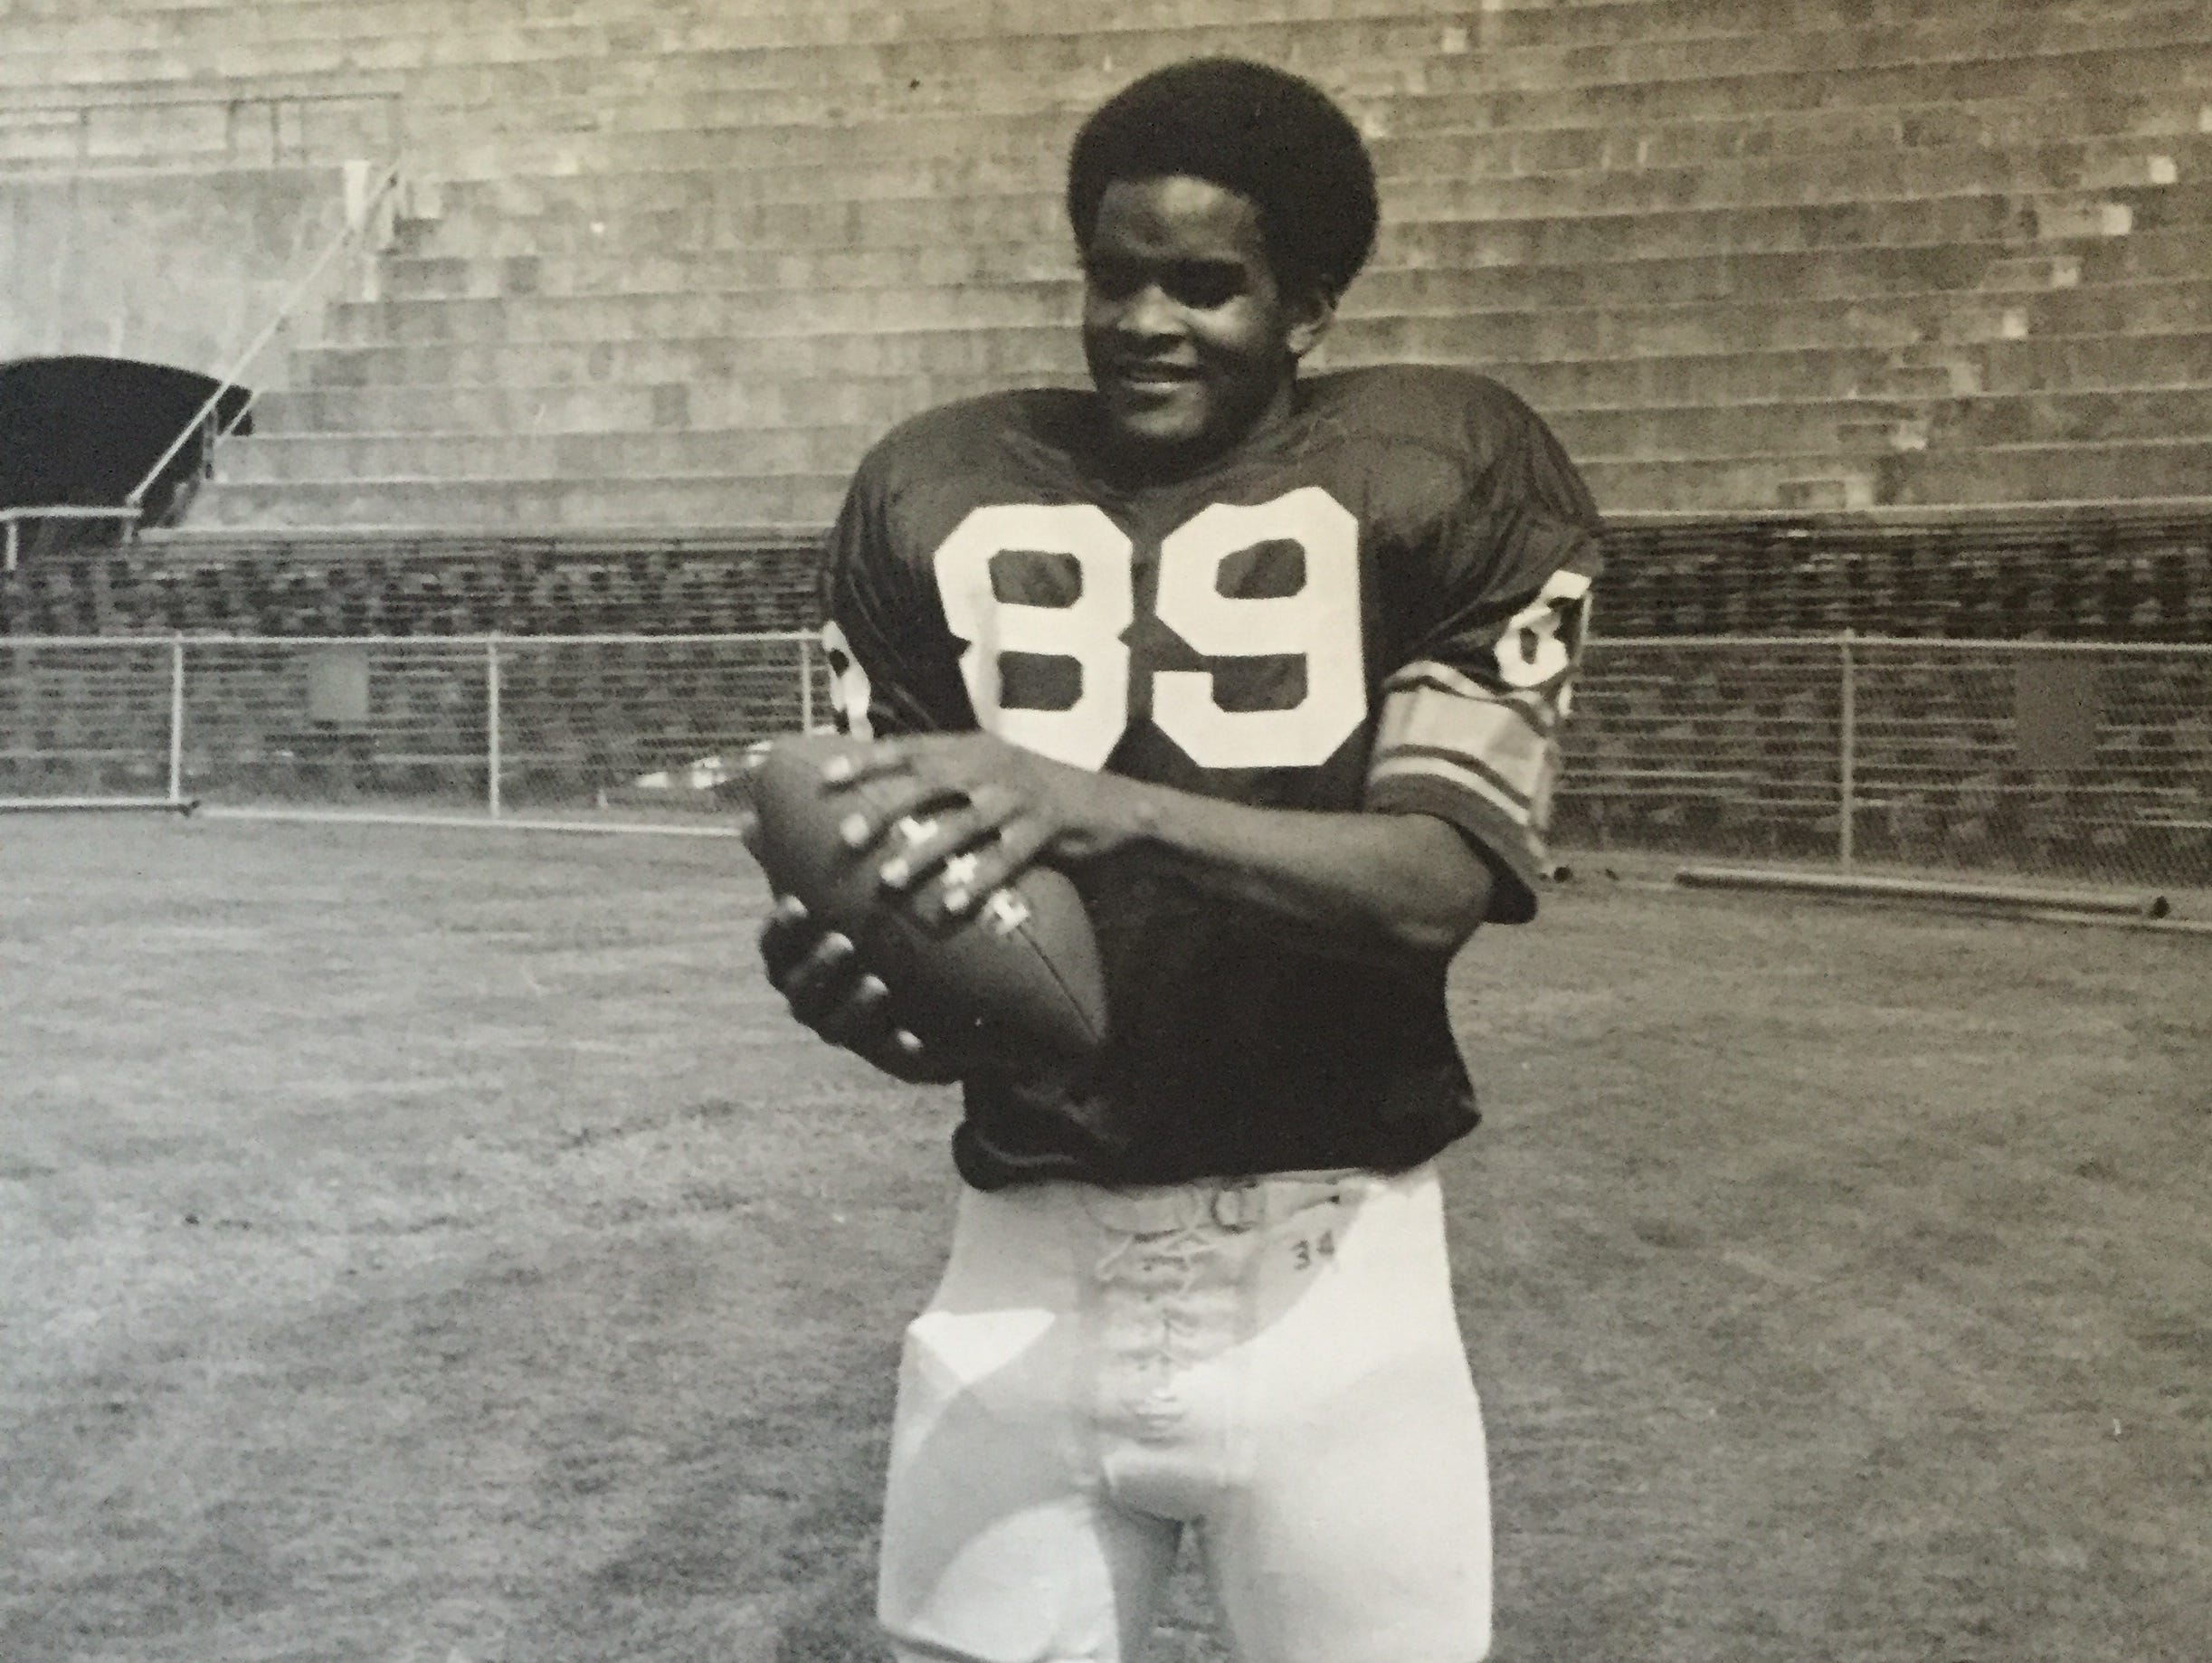 Red Bank's Lonnie Allgood, shown in 1976 after being drafted by the Cincinnati Bengals.